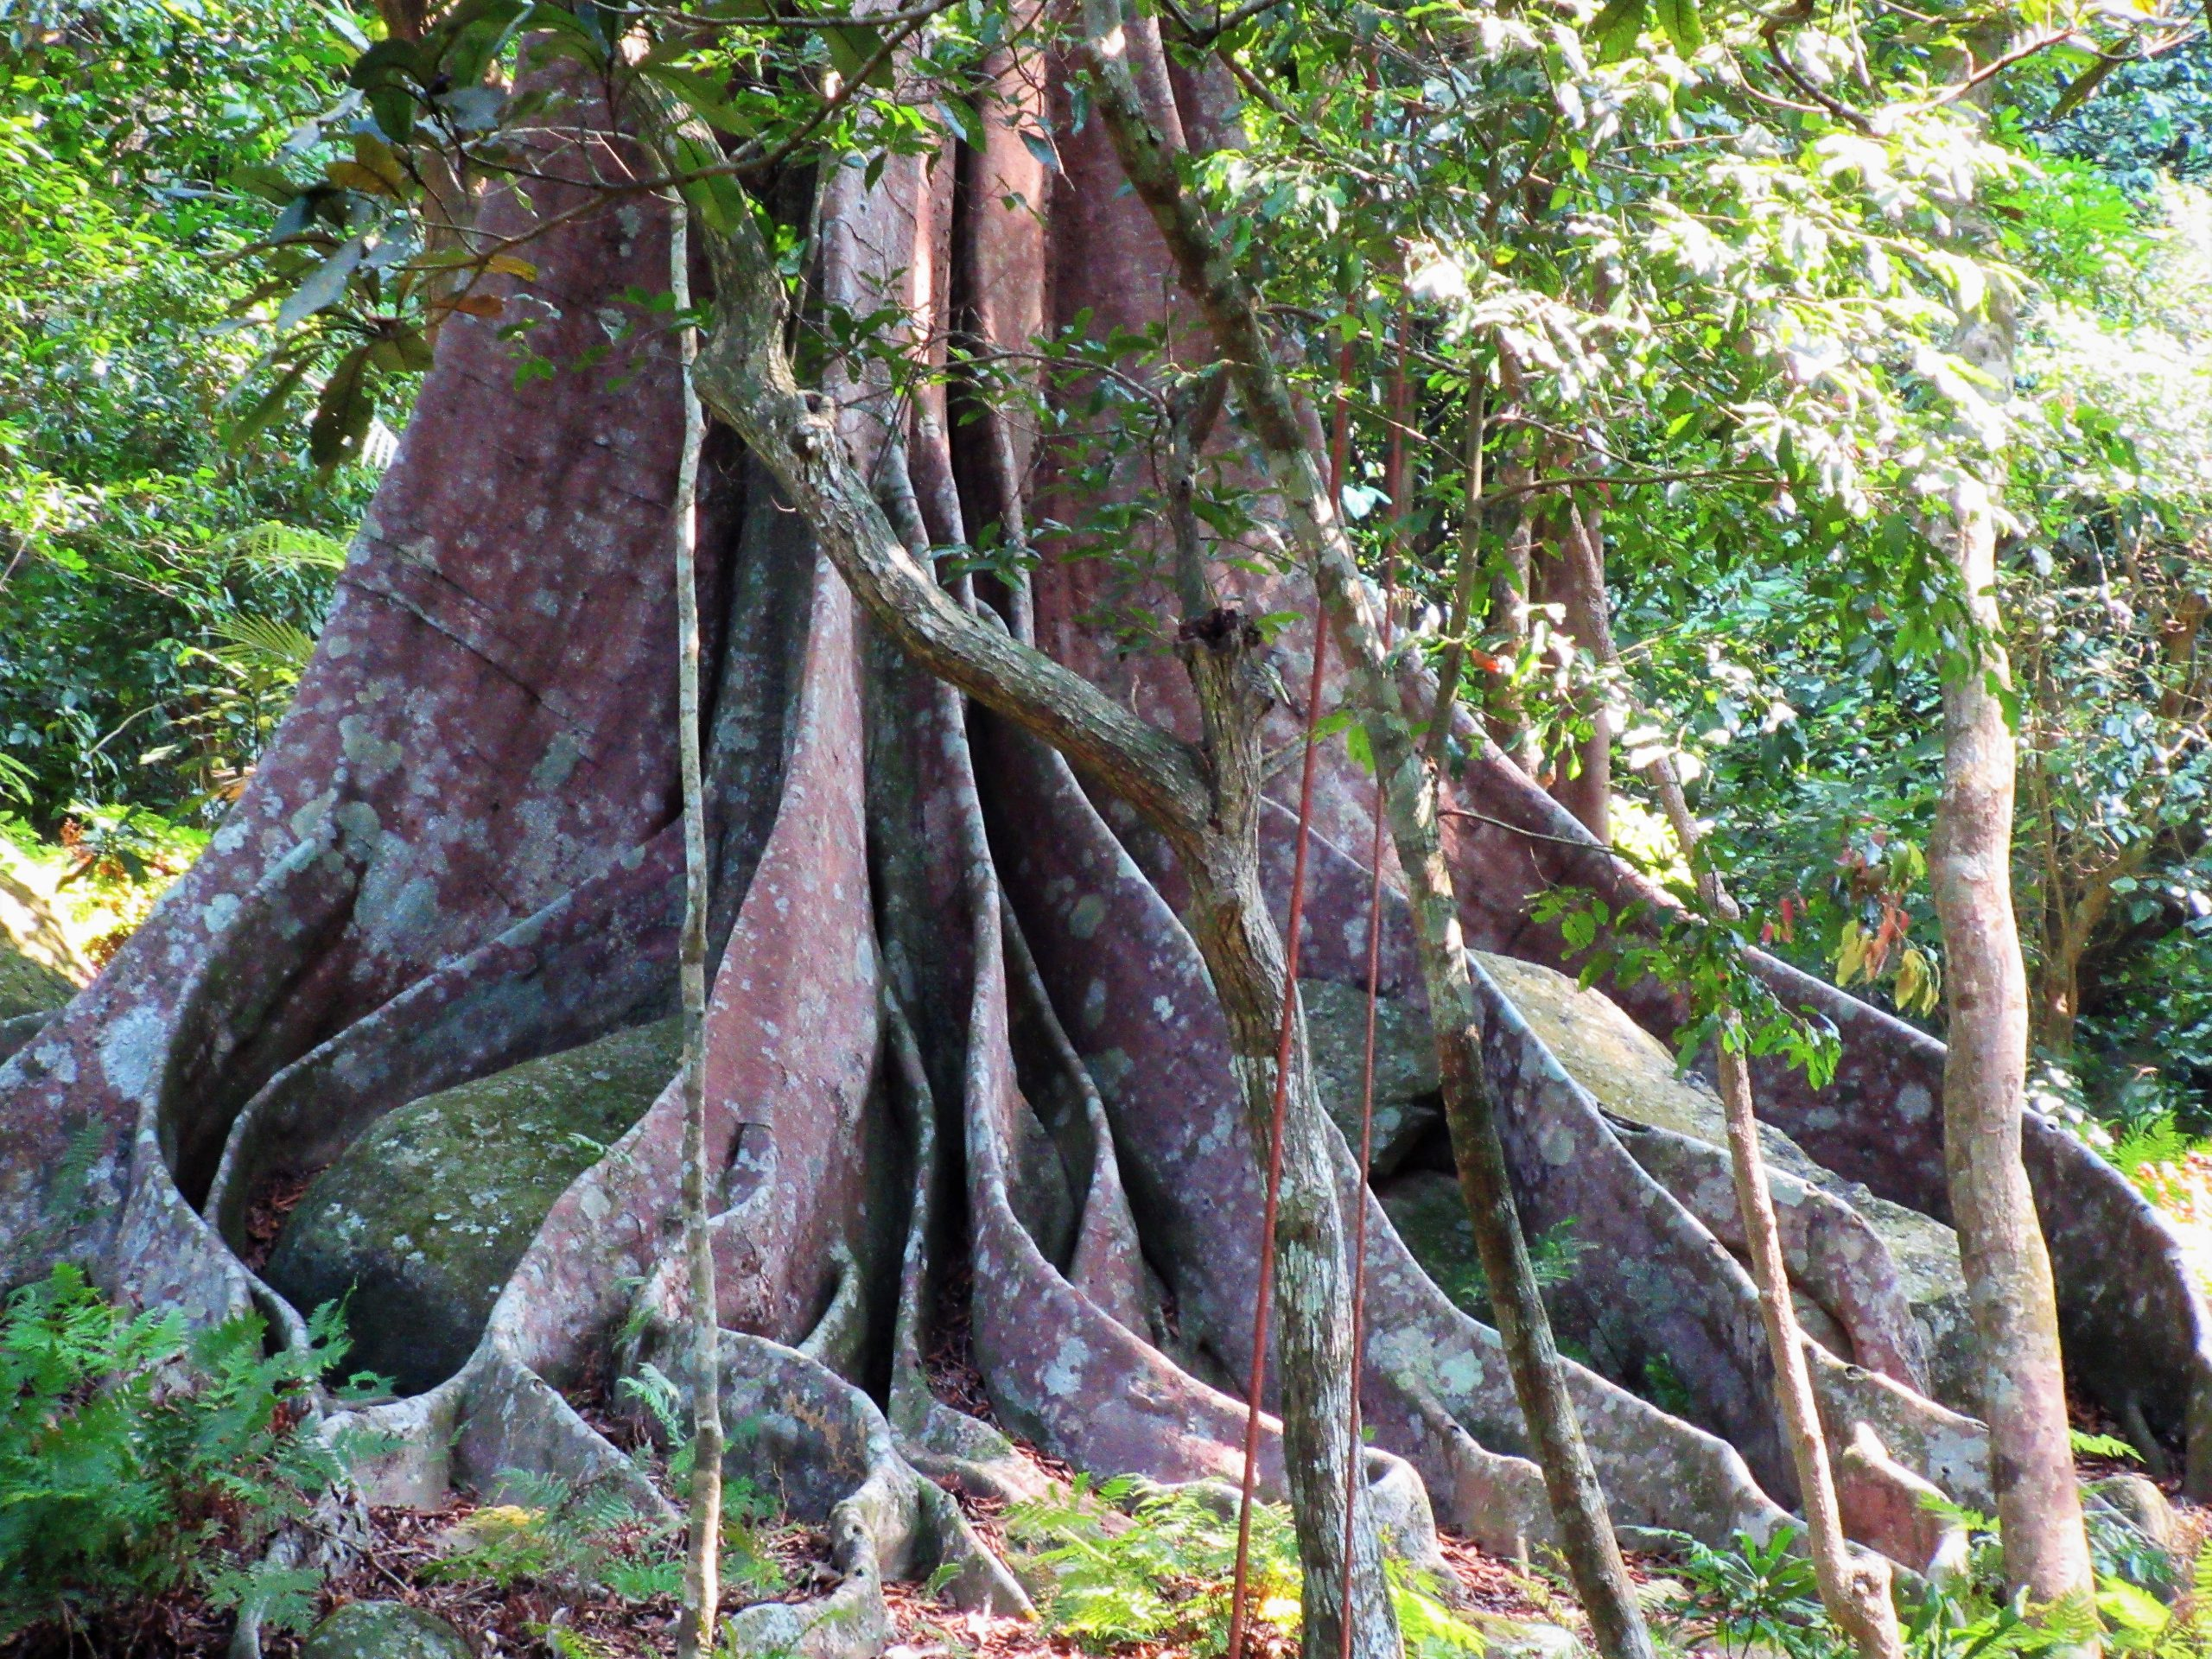 The rutted trunk of an ancient banyan tree, Vietnam